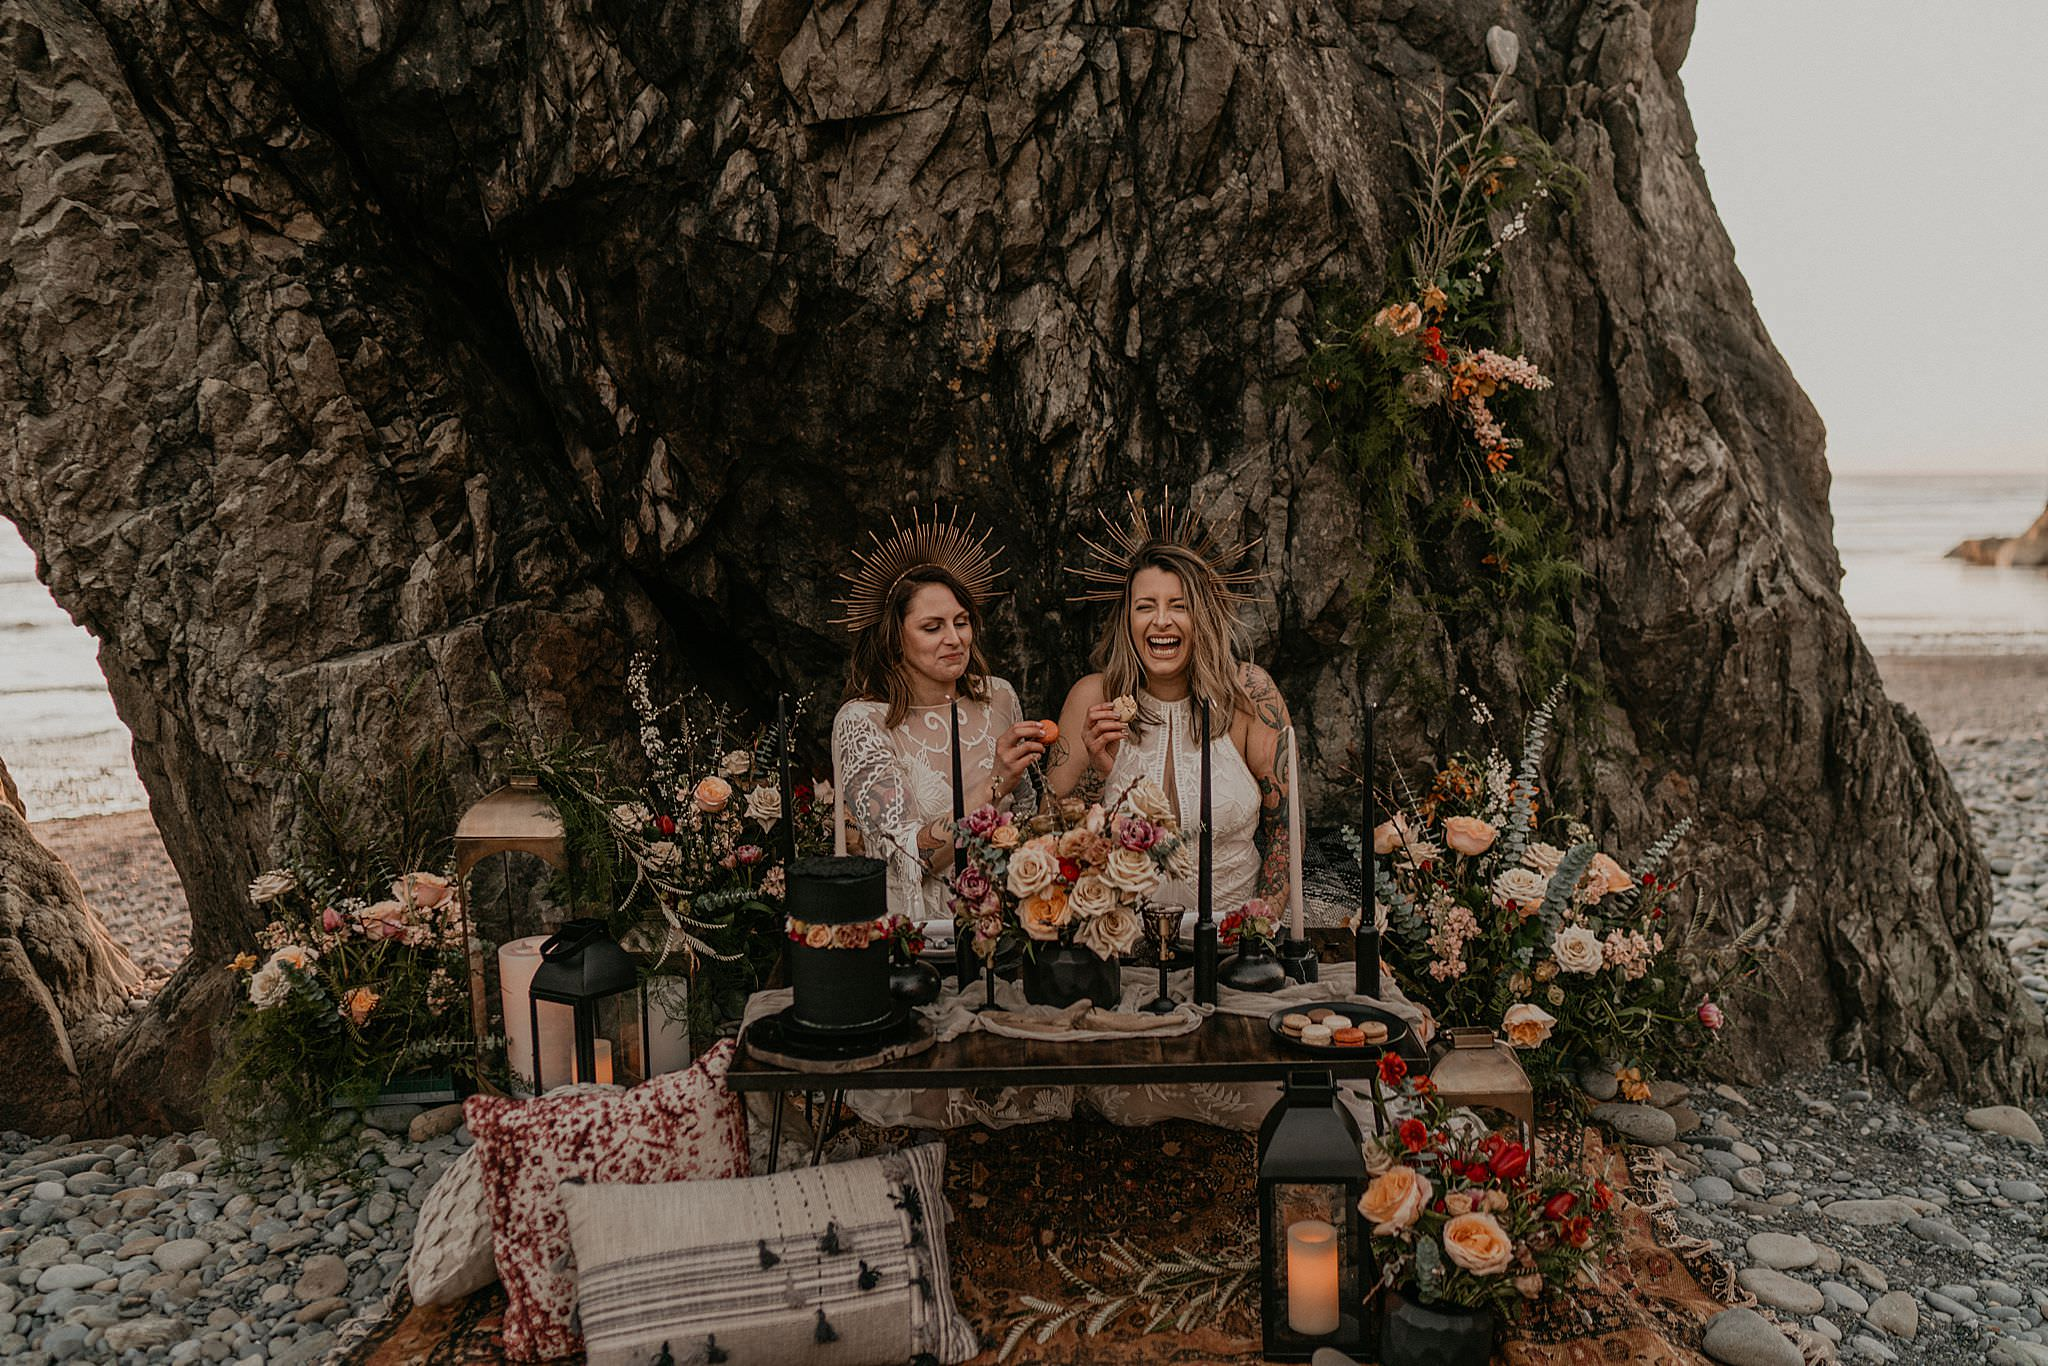 A very PNW elopement and vow renewal at Ruby Beach Olympic National Park as seen on junebug weddings